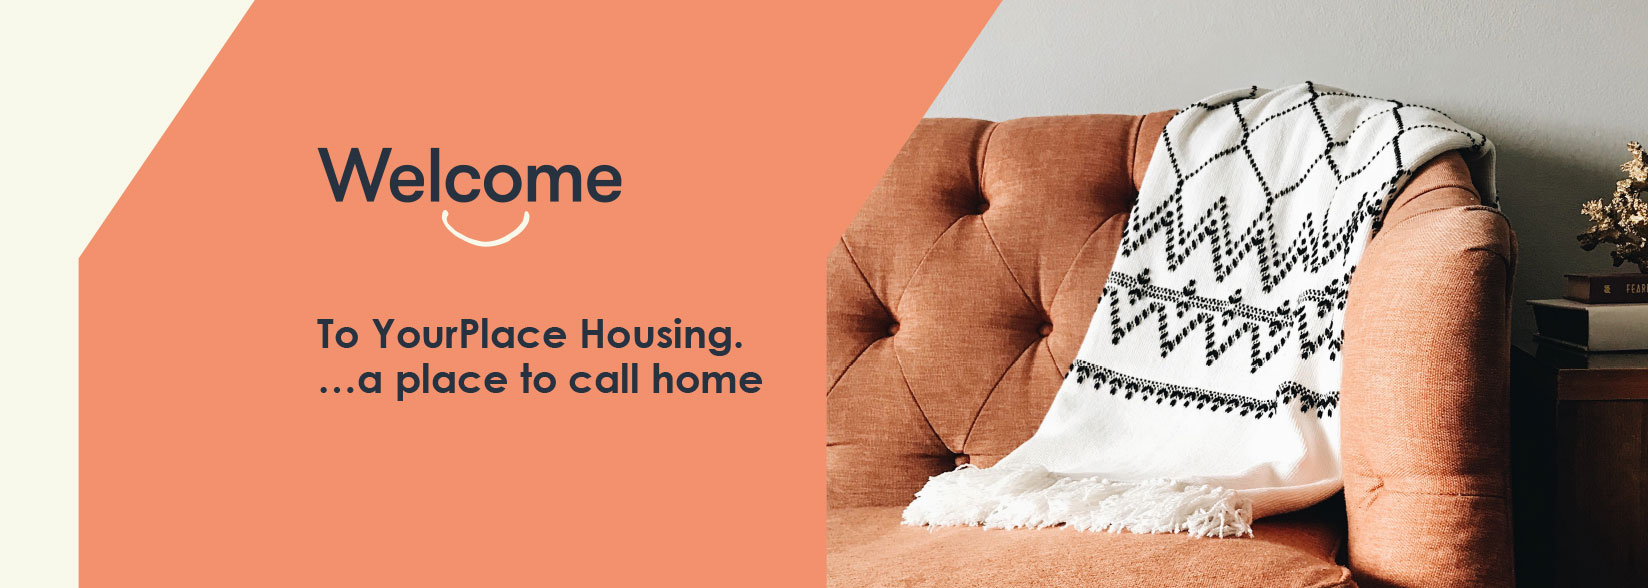 Welcome to YourPlace Housing …a place to call home